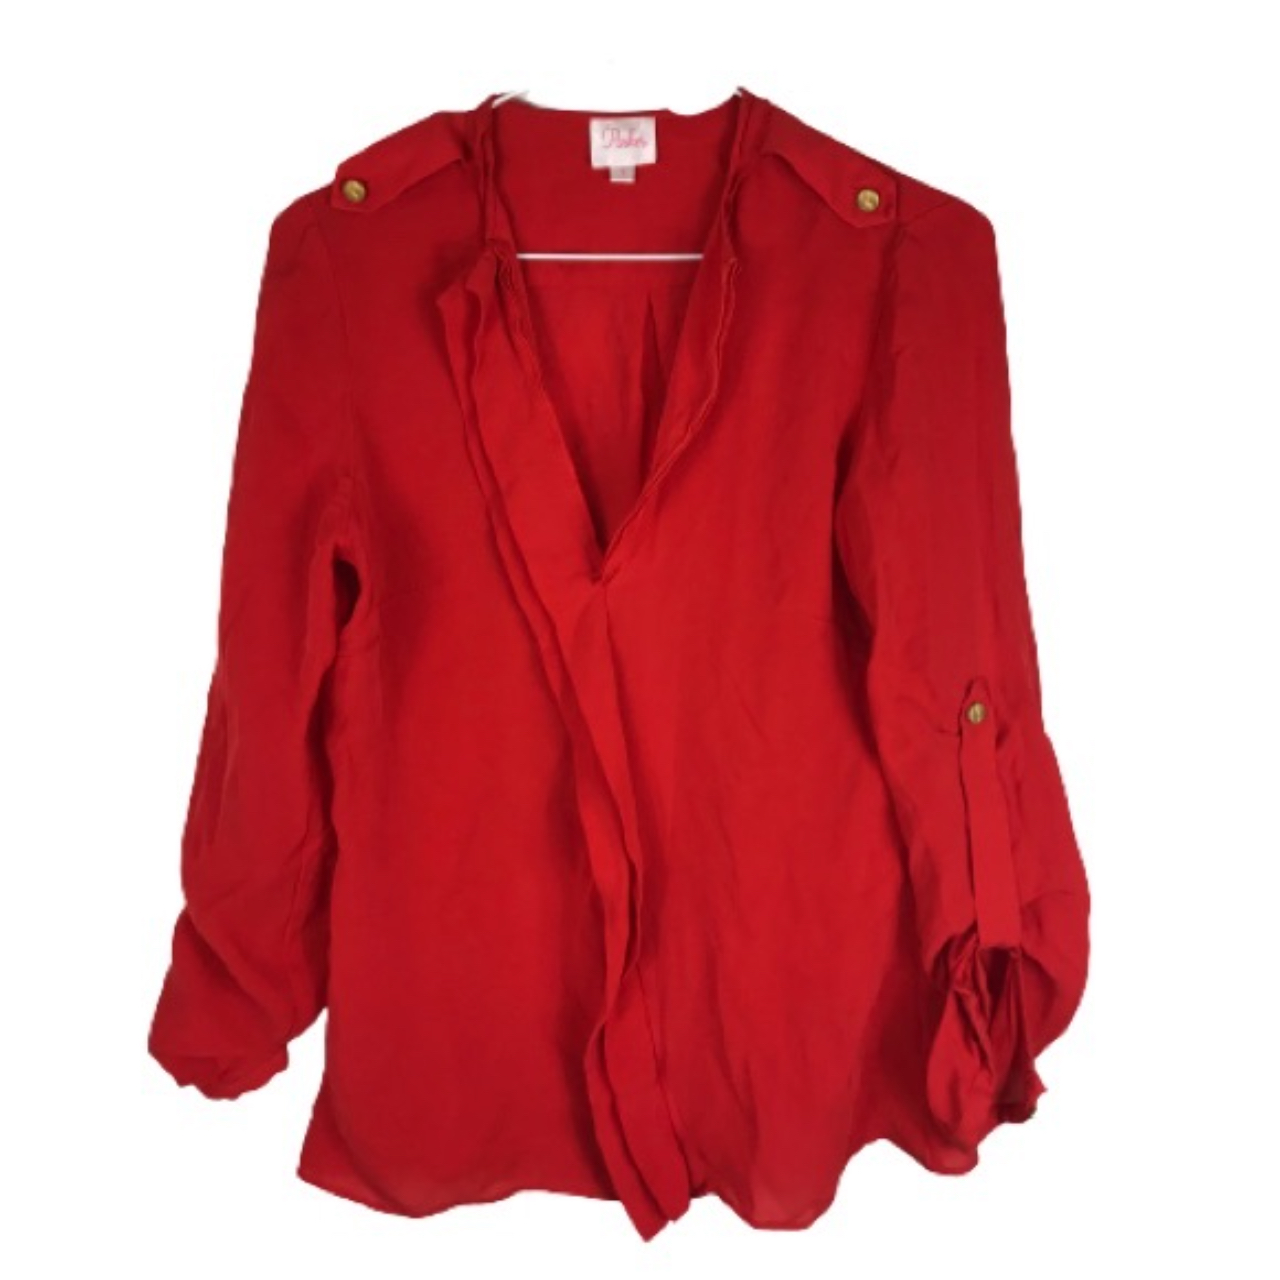 Product Image 1 - Parker Red Silk Blouse, Size